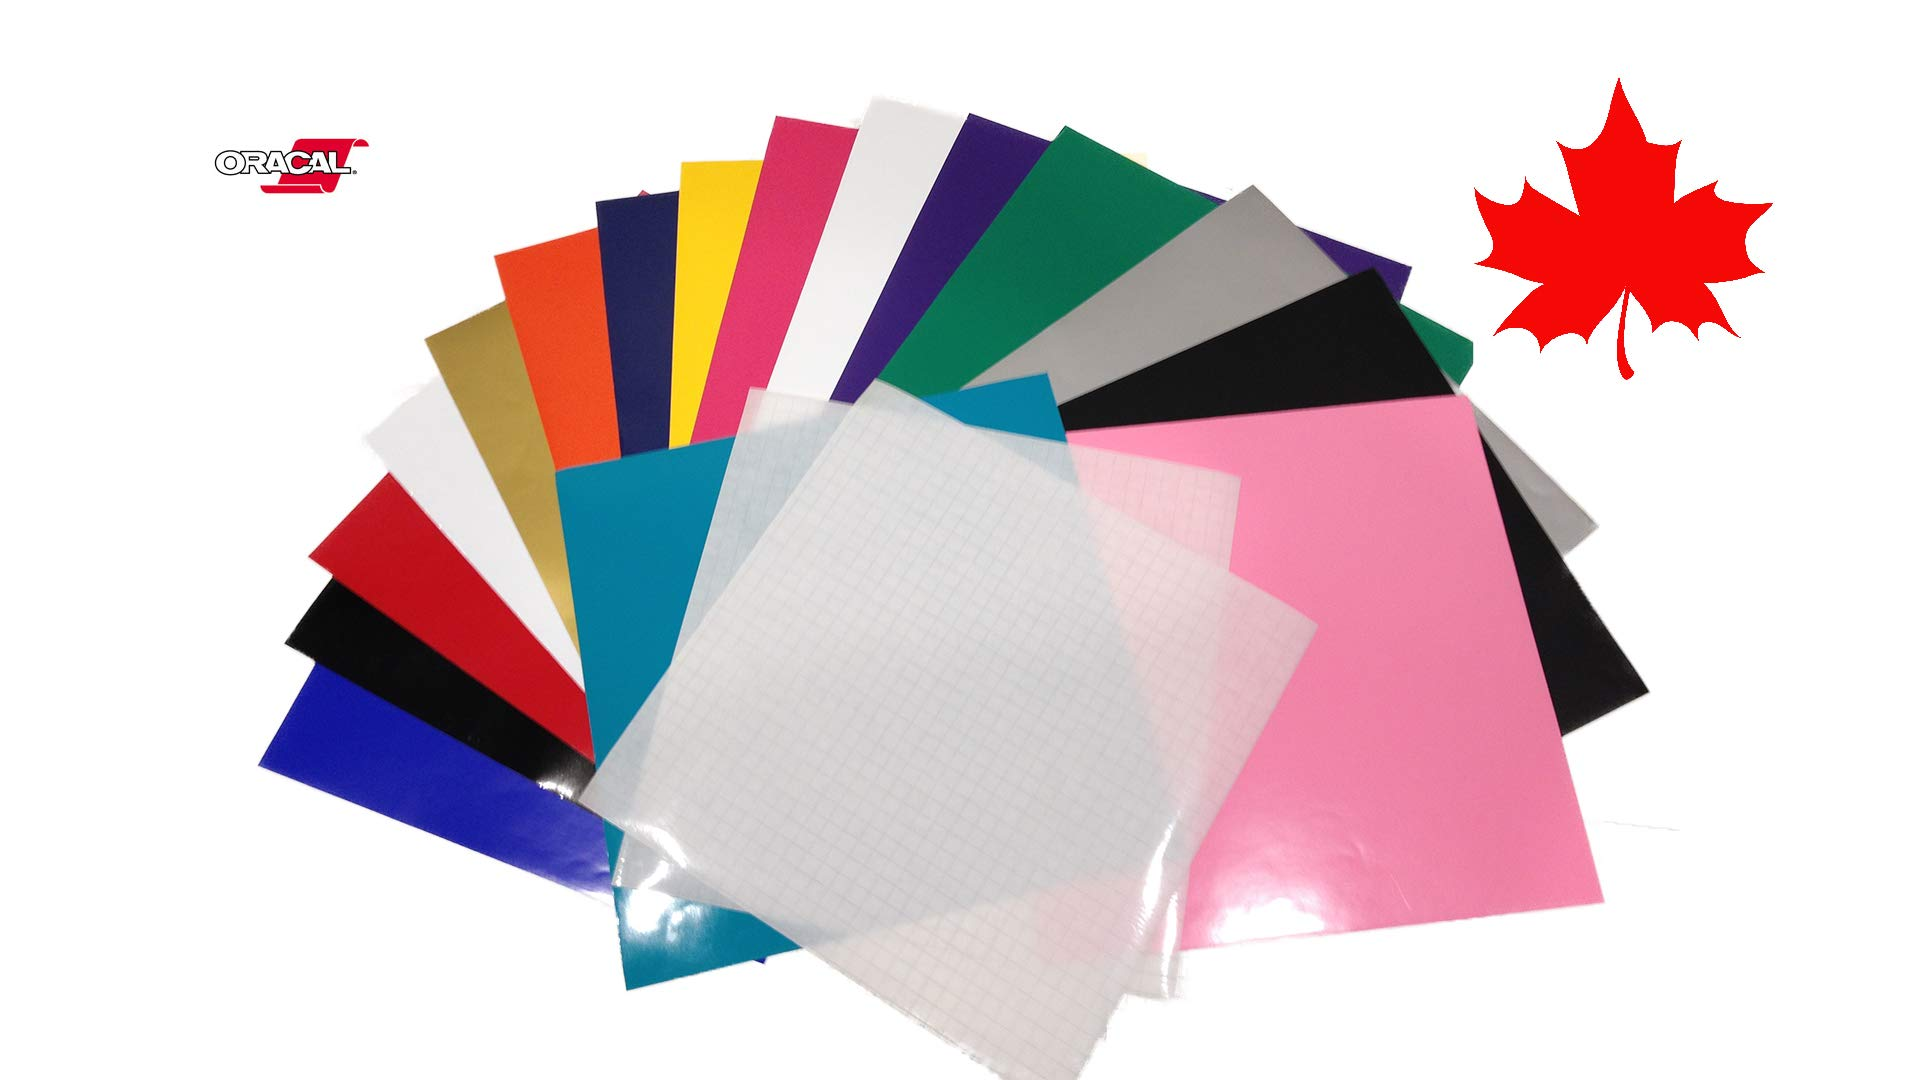 ORACAL 651 Adhesive Vinyl Sheets for Cricut vinyl projects